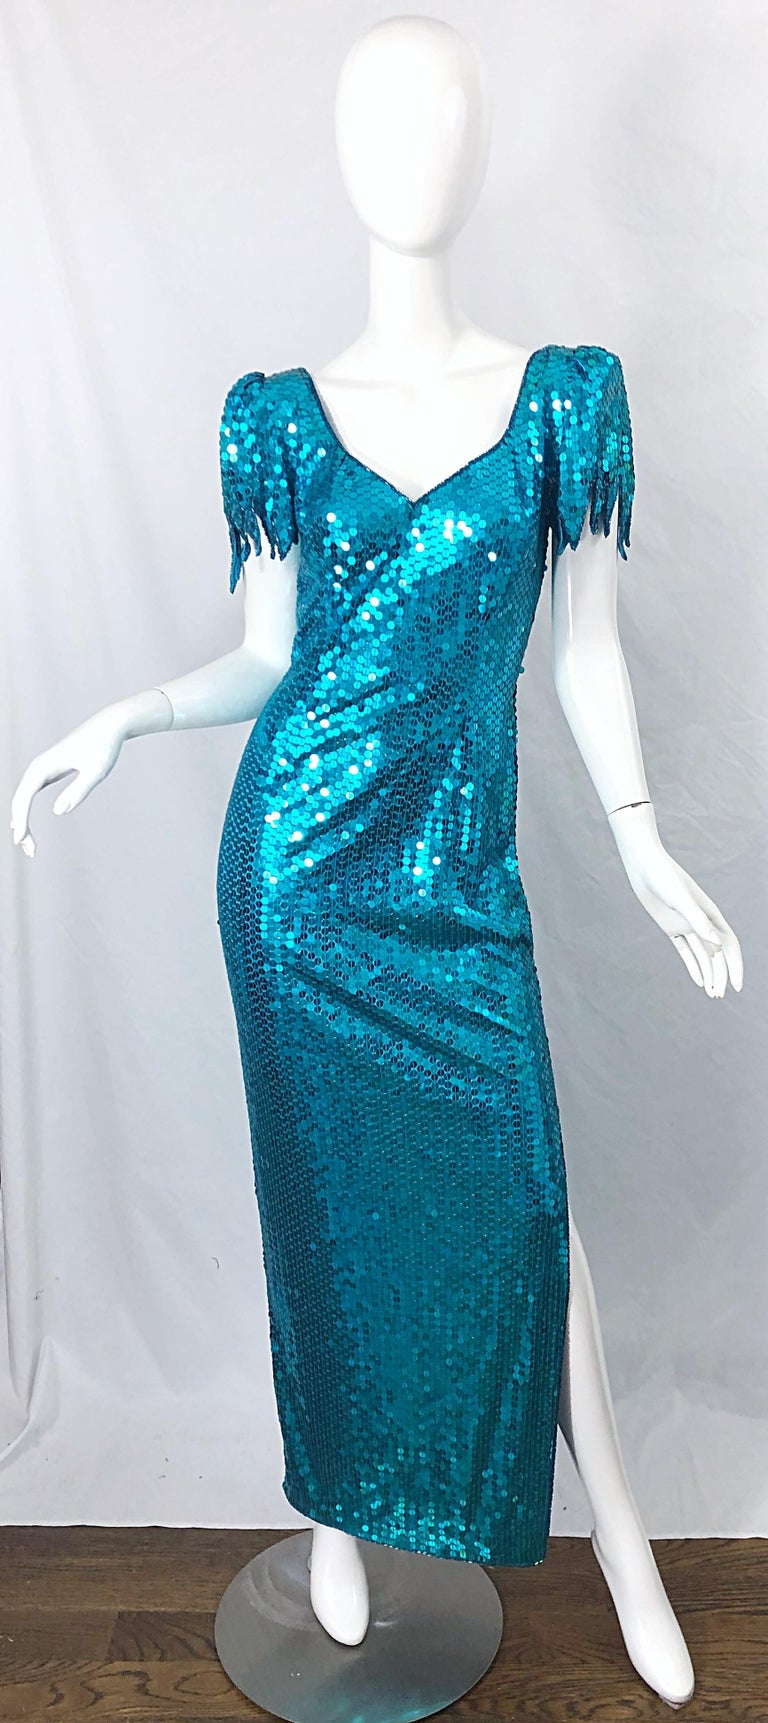 Avant Garde TED LAPIDUS turquoise blue fully sequined evening gown dress ! Features thousands of hand-sewn sequins throughout the entire dress. Hundreds of seed beads align the collar. Scalloped sleeve cuffs. Slit up the left side of the leg reveals